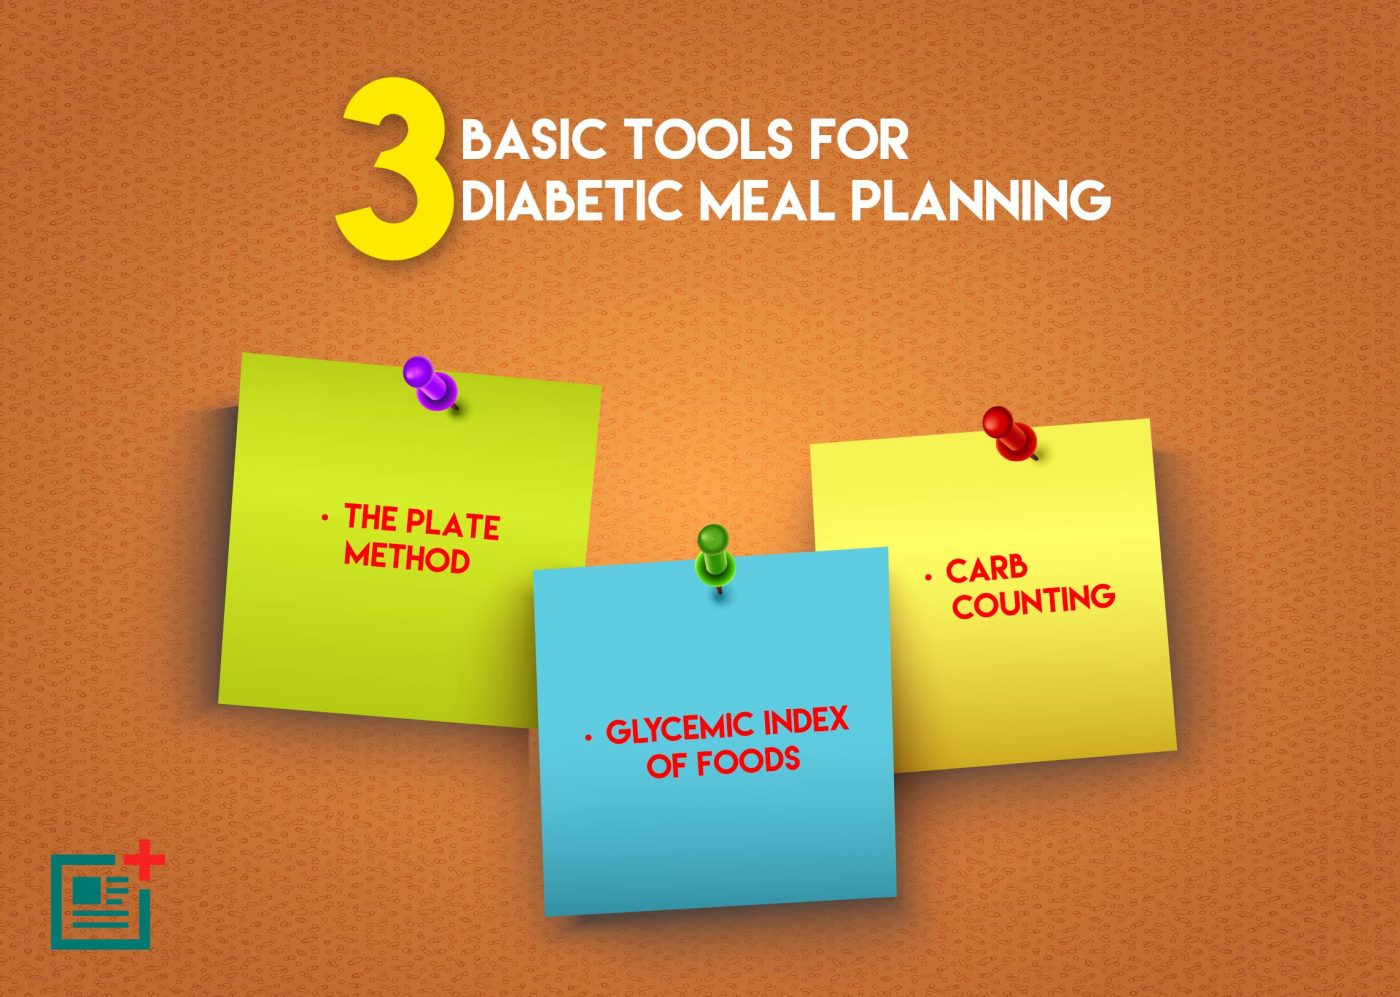 3-basic-tools-for-diabetic-meal-planning